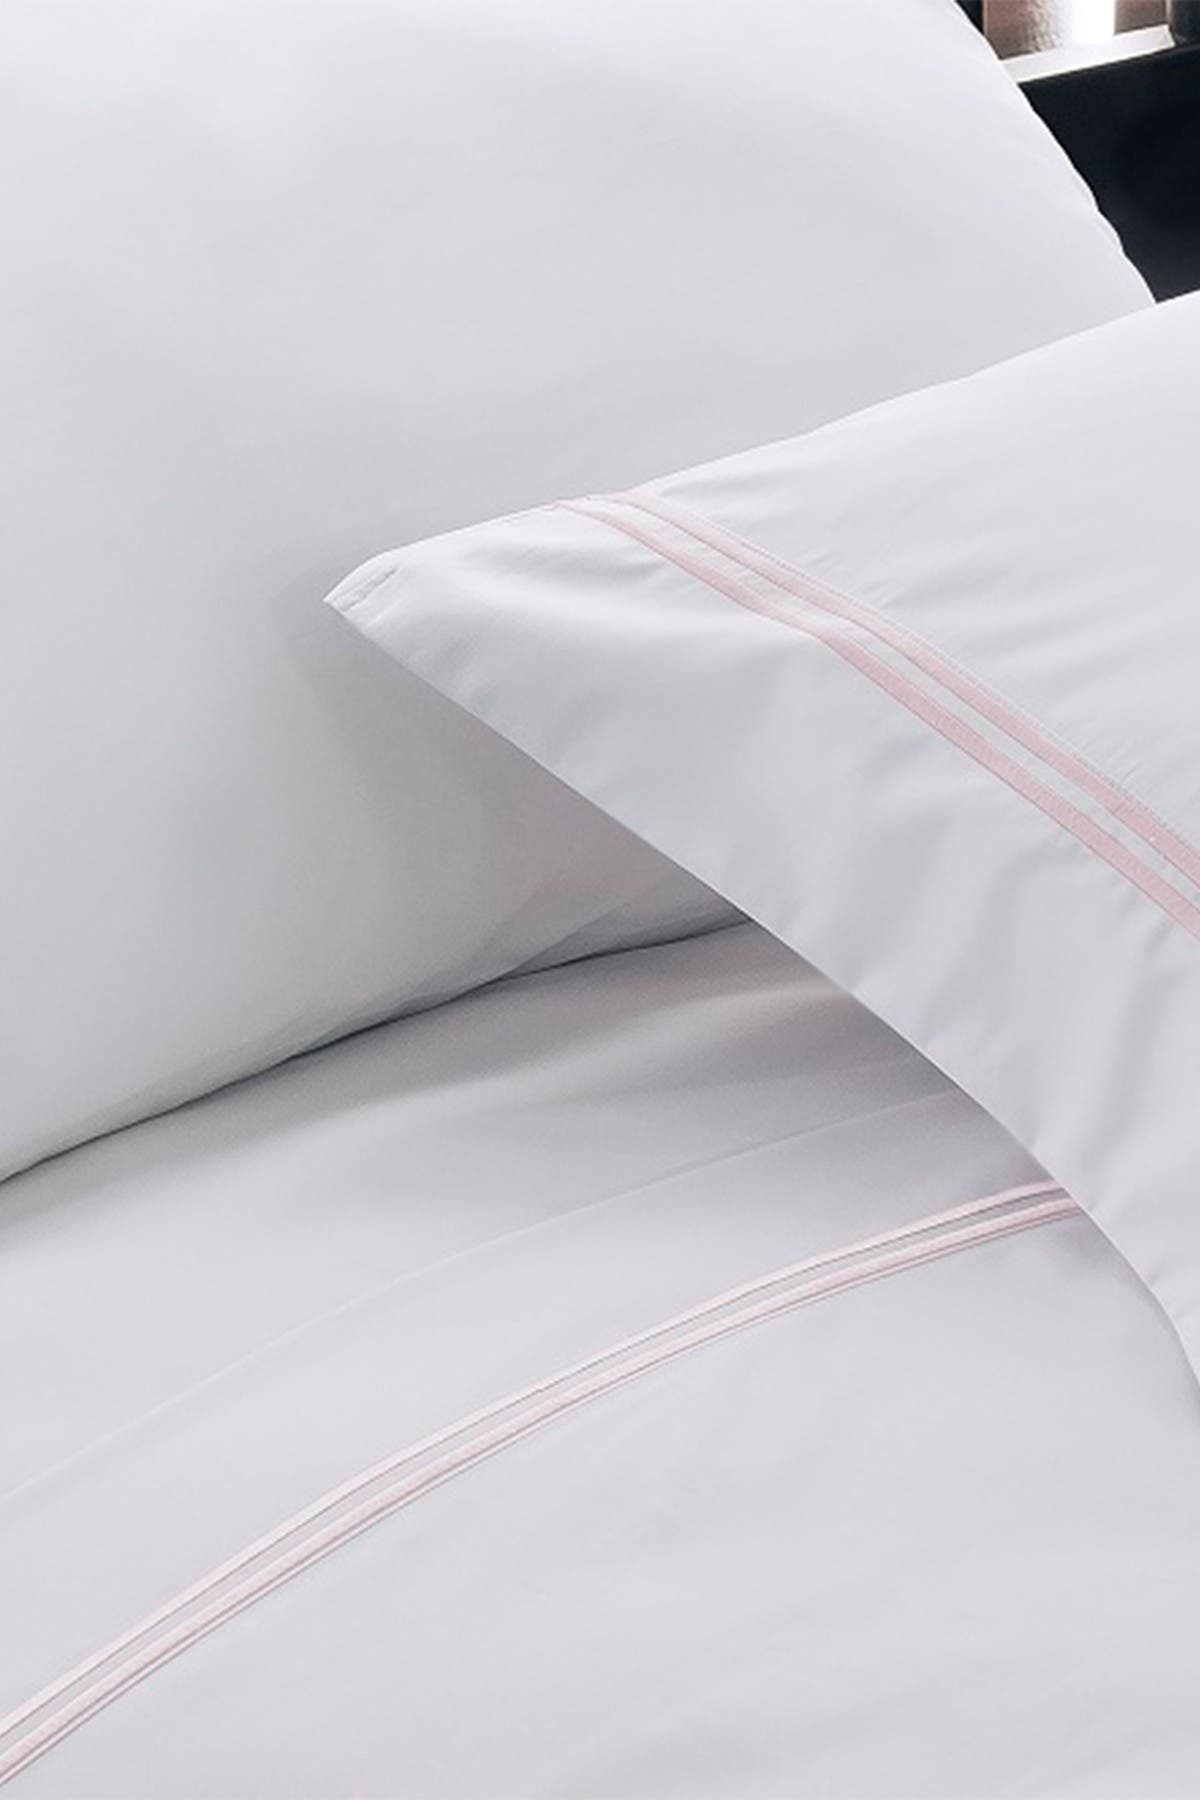 Image of Blue Ridge Home Fashions Hotel Suite 1200-TC Cotton-Rich Embroidered Sheet Set - King - Lilac